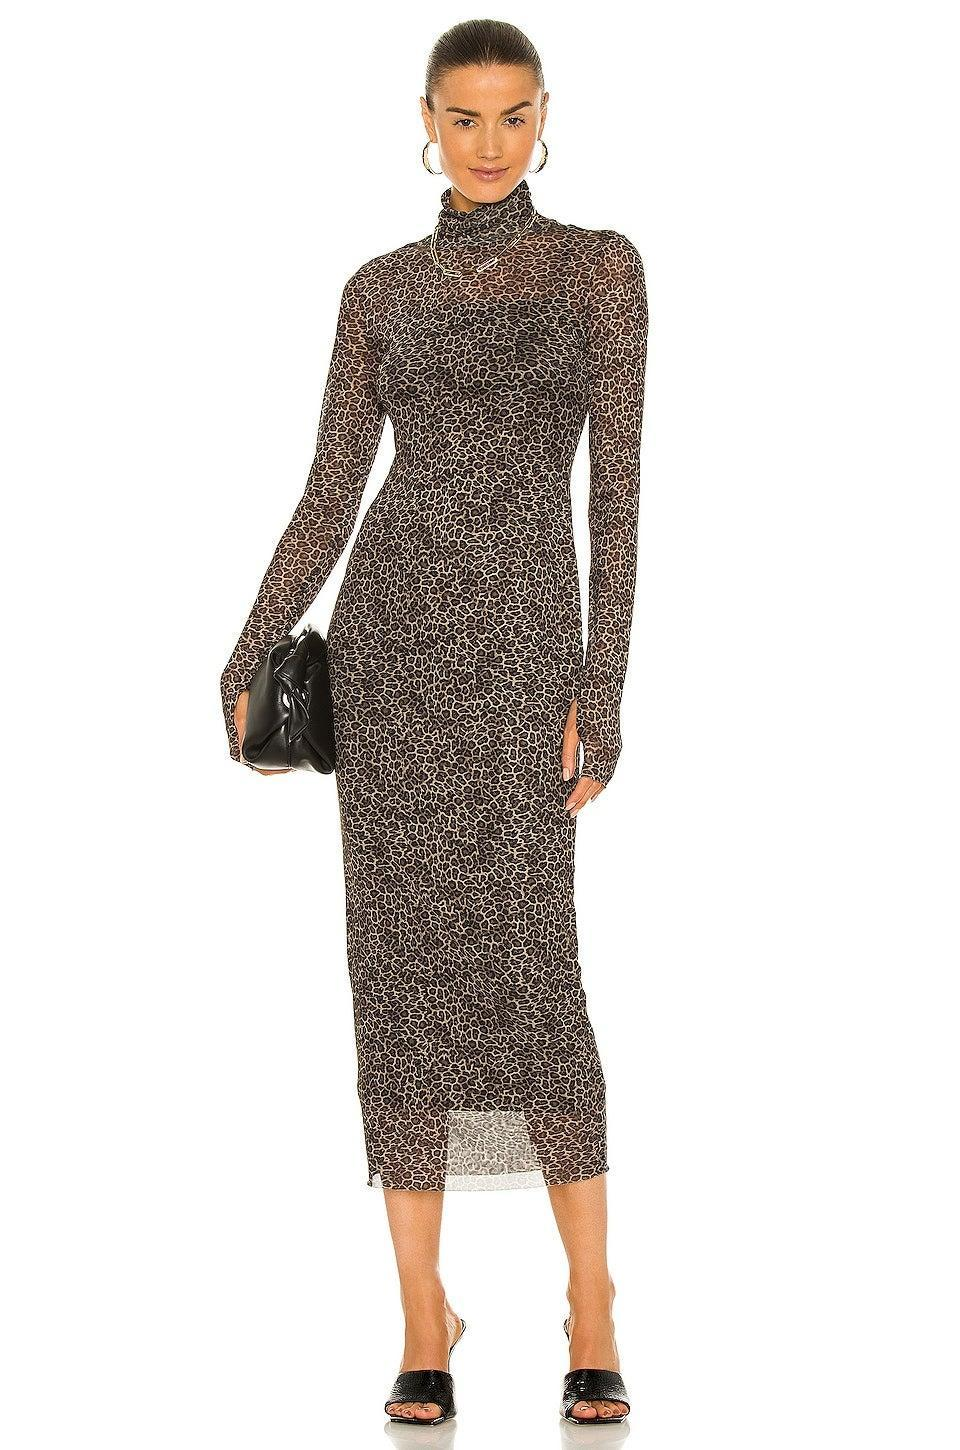 """<h2>AFRM Shailene Midi Dress</h2><br><strong><em>The Comfortably Out-Of-Your-Comfort-Zone Style</em></strong><br><br>Leopard print, sheer mesh fabric, and cheeky thumbholes are the fixings for a seriously fashion-forward fall dress. Even so, this is one style that you can feel confident in as you step outside of your sartorial comfort zone.<br><br><strong>The Hype: </strong>4 out of 5 stars; 17 reviews on Revolve.com<br><br><strong>What They're Saying</strong>: """"This is the BEST . I wasn't sure at all at first because I thought the material would be too fine and it looked a bit tricky to put on with the straps and armholes, I got it wrong a couple of times! Once I'd got it properly on however I fell in love. This dress is incredible - hugs every curve without being too tight or showy. Can't wait to style it with oxfords or heels/boots and a leather jacket for Fall evenings out. For sizing, I'm 5'11 and 185 lbs and DD's and I went with the medium based on reviews and it fits great, I think the large would have been too big! A great buy, especially for the price!"""" — Anonymous, Revolve reviewer<br><br><em>Shop</em> <strong><em><a href=""""https://www.revolve.com/afrm-shailene-midi-dress-in-vintage-leopard/dp/AFFM-WD18/"""" rel=""""sponsored"""" target=""""_blank"""" data-ylk=""""slk:Revolve"""" class=""""link rapid-noclick-resp"""">Revolve</a></em></strong><br><br><br><strong>AFRM</strong> Shailene Midi Dress, $, available at <a href=""""https://go.skimresources.com/?id=30283X879131&url=https%3A%2F%2Fwww.revolve.com%2Fafrm-shailene-midi-dress-in-vintage-leopard%2Fdp%2FAFFM-WD18%2F"""" rel=""""sponsored"""" target=""""_blank"""" data-ylk=""""slk:Revolve"""" class=""""link rapid-noclick-resp"""">Revolve</a>"""